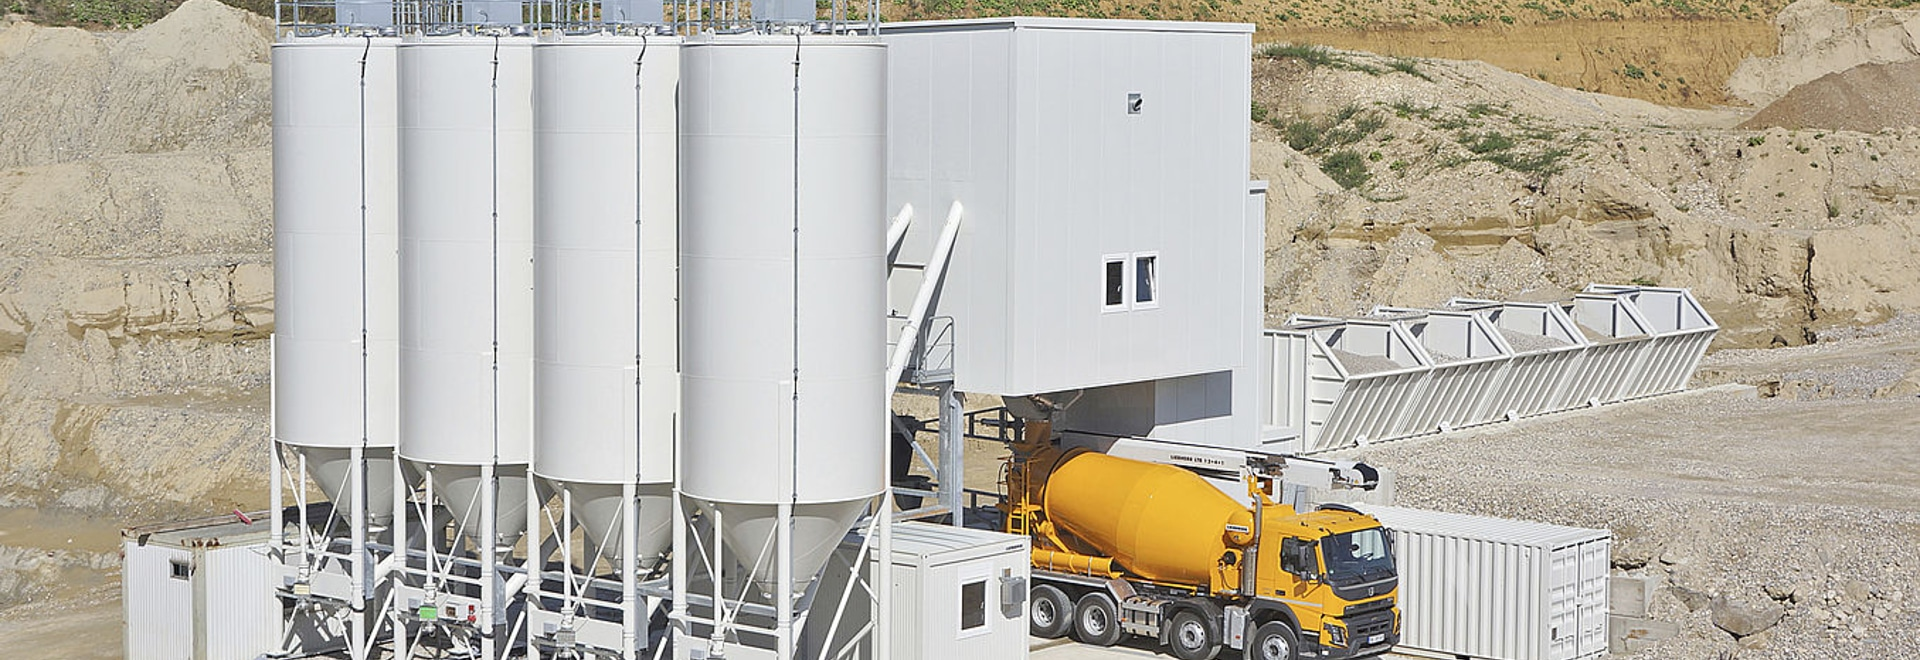 Liebherr Betomix mixing plant:  unsurpassed flexibility in use worldwide